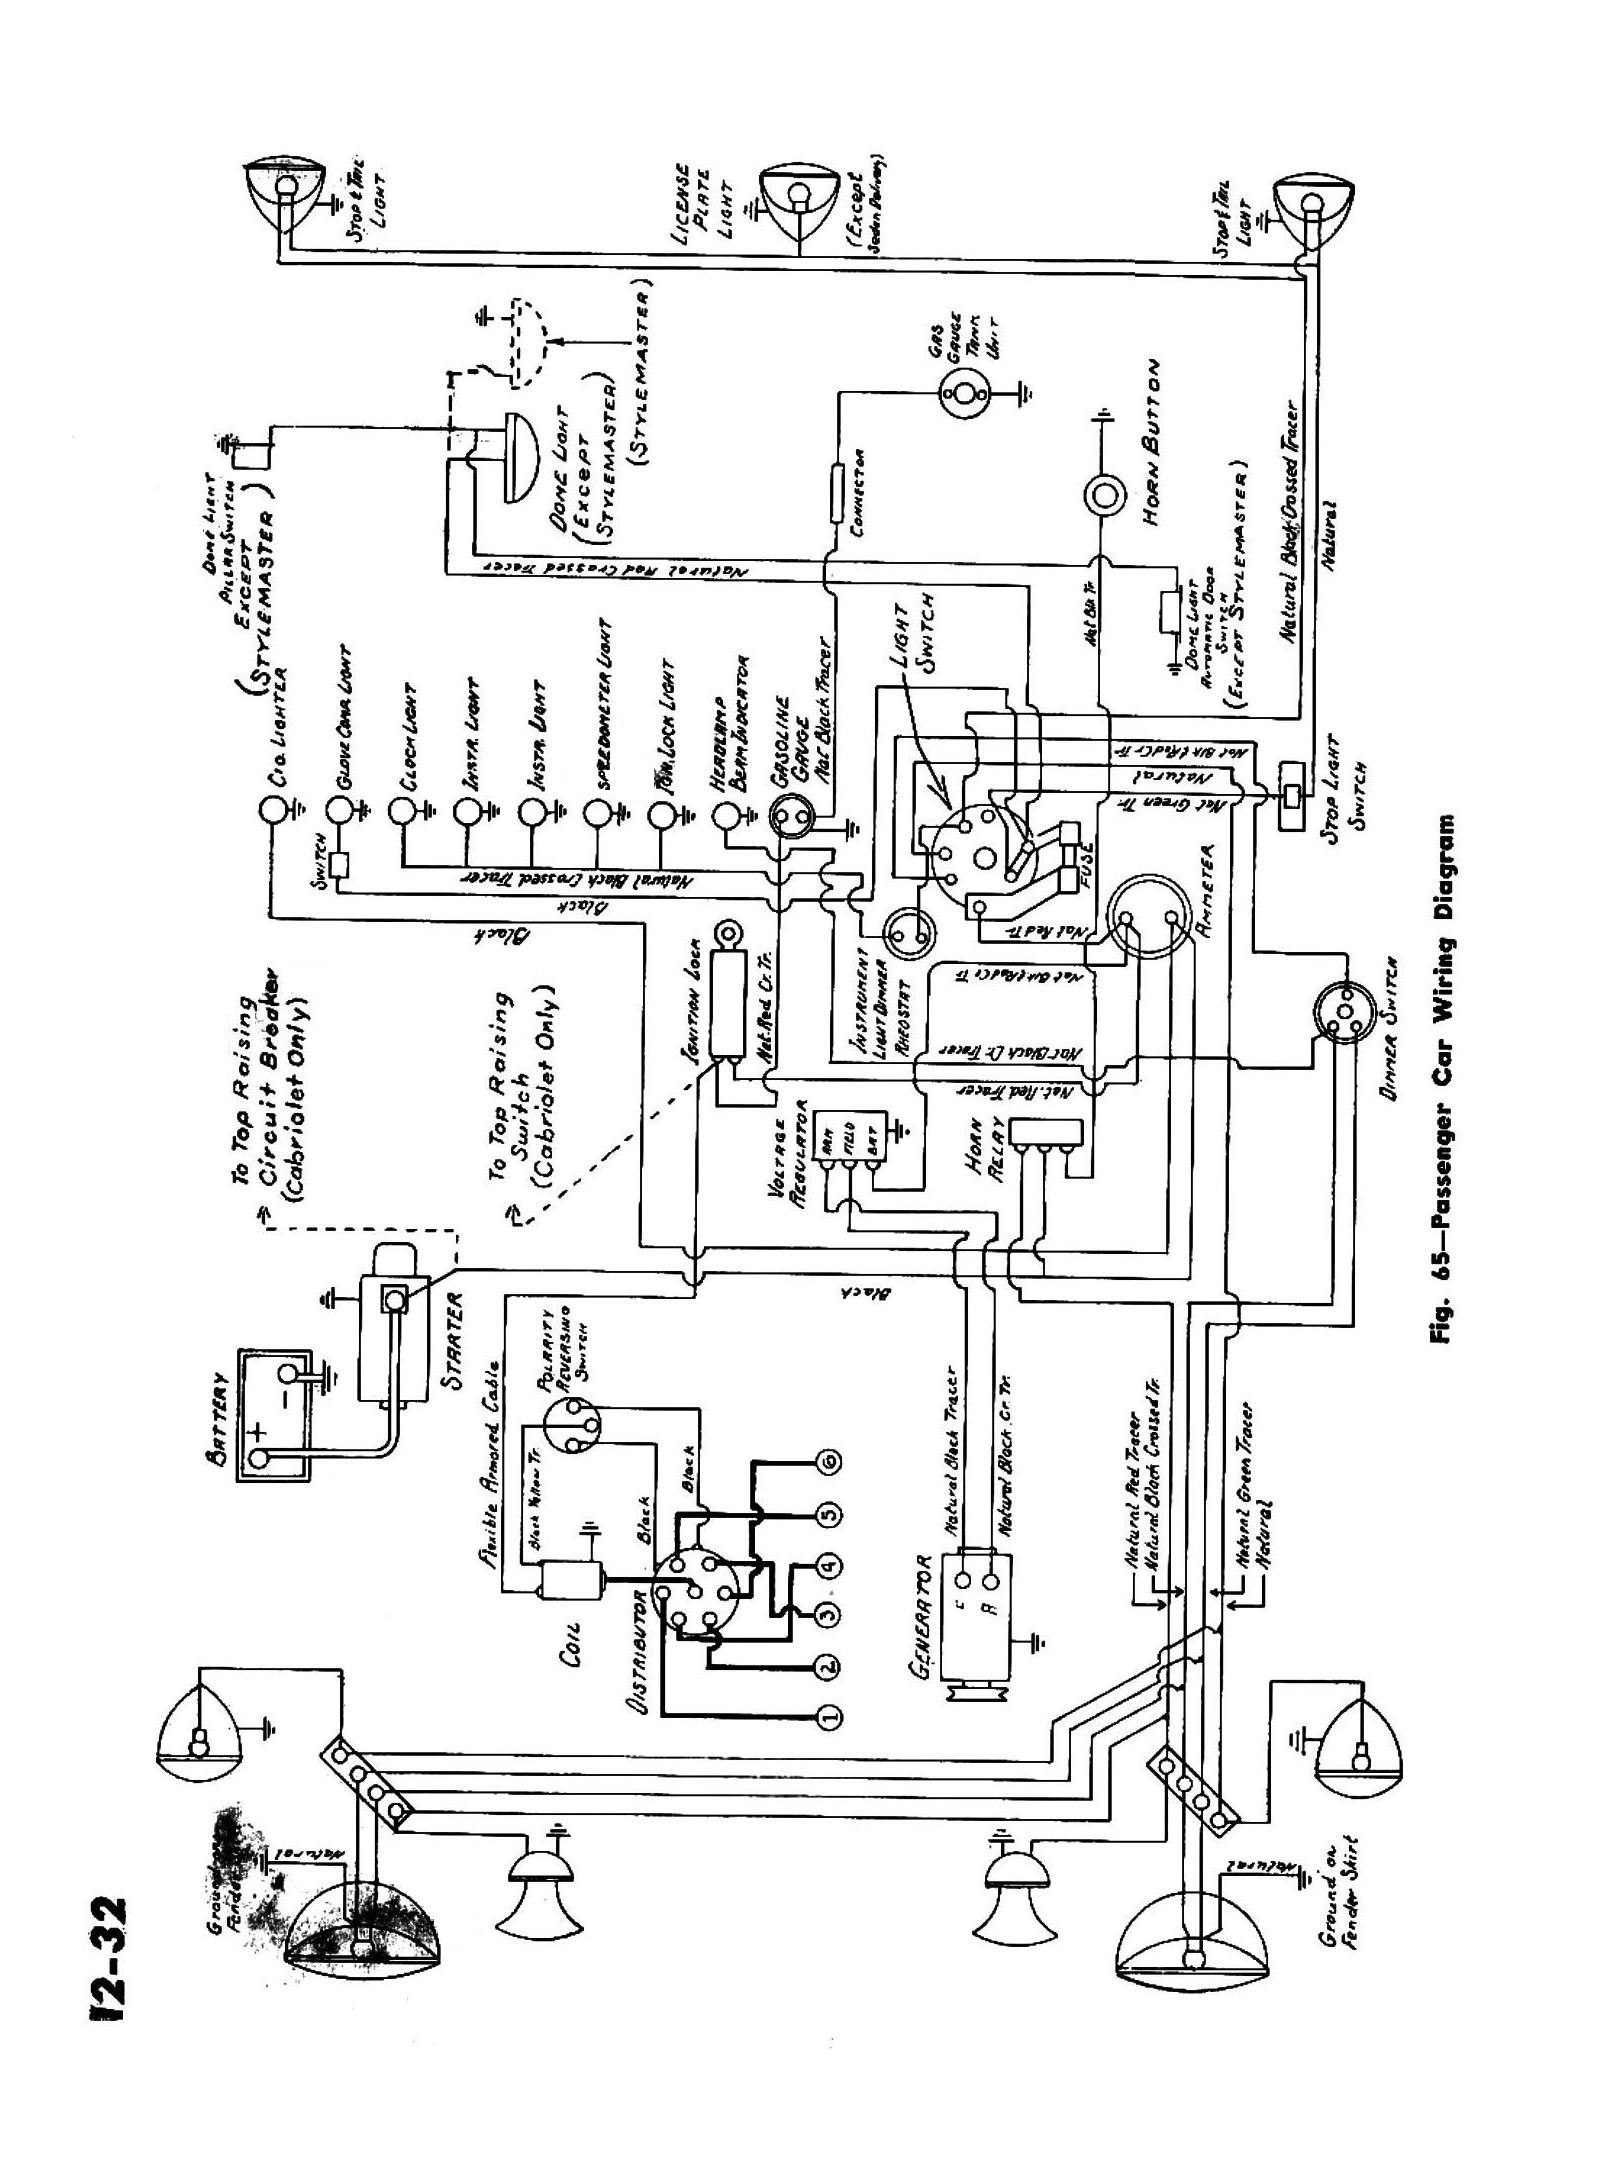 45car chevy wiring diagrams find wiring diagram for 87 ford f 150 at cita.asia